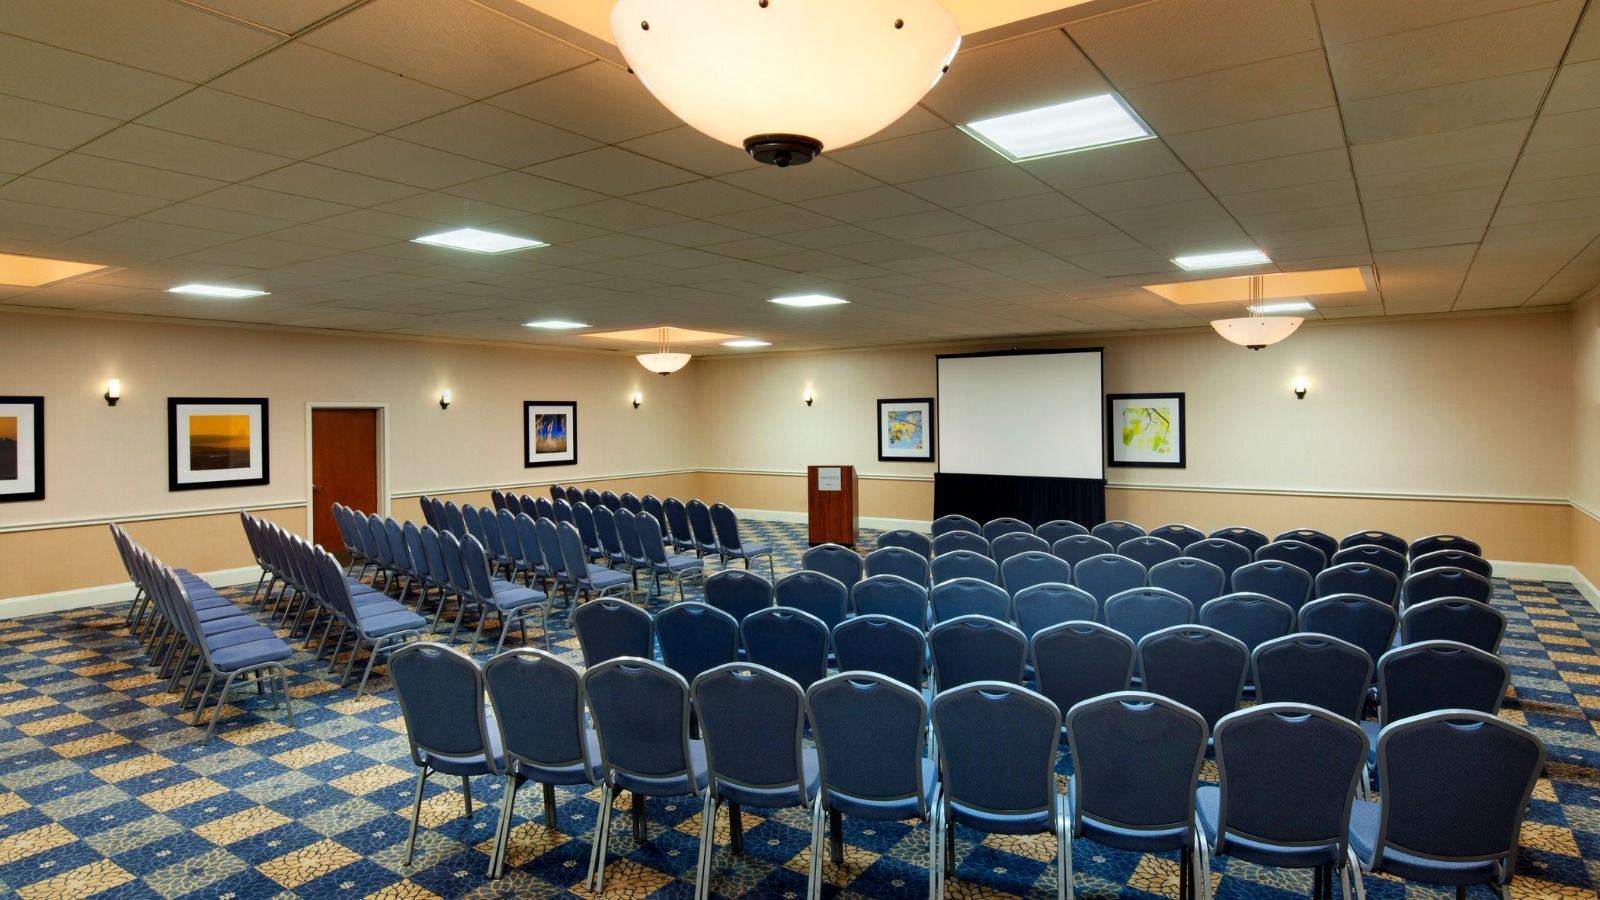 Event Venues in Bakersfield CA - Meeting Space